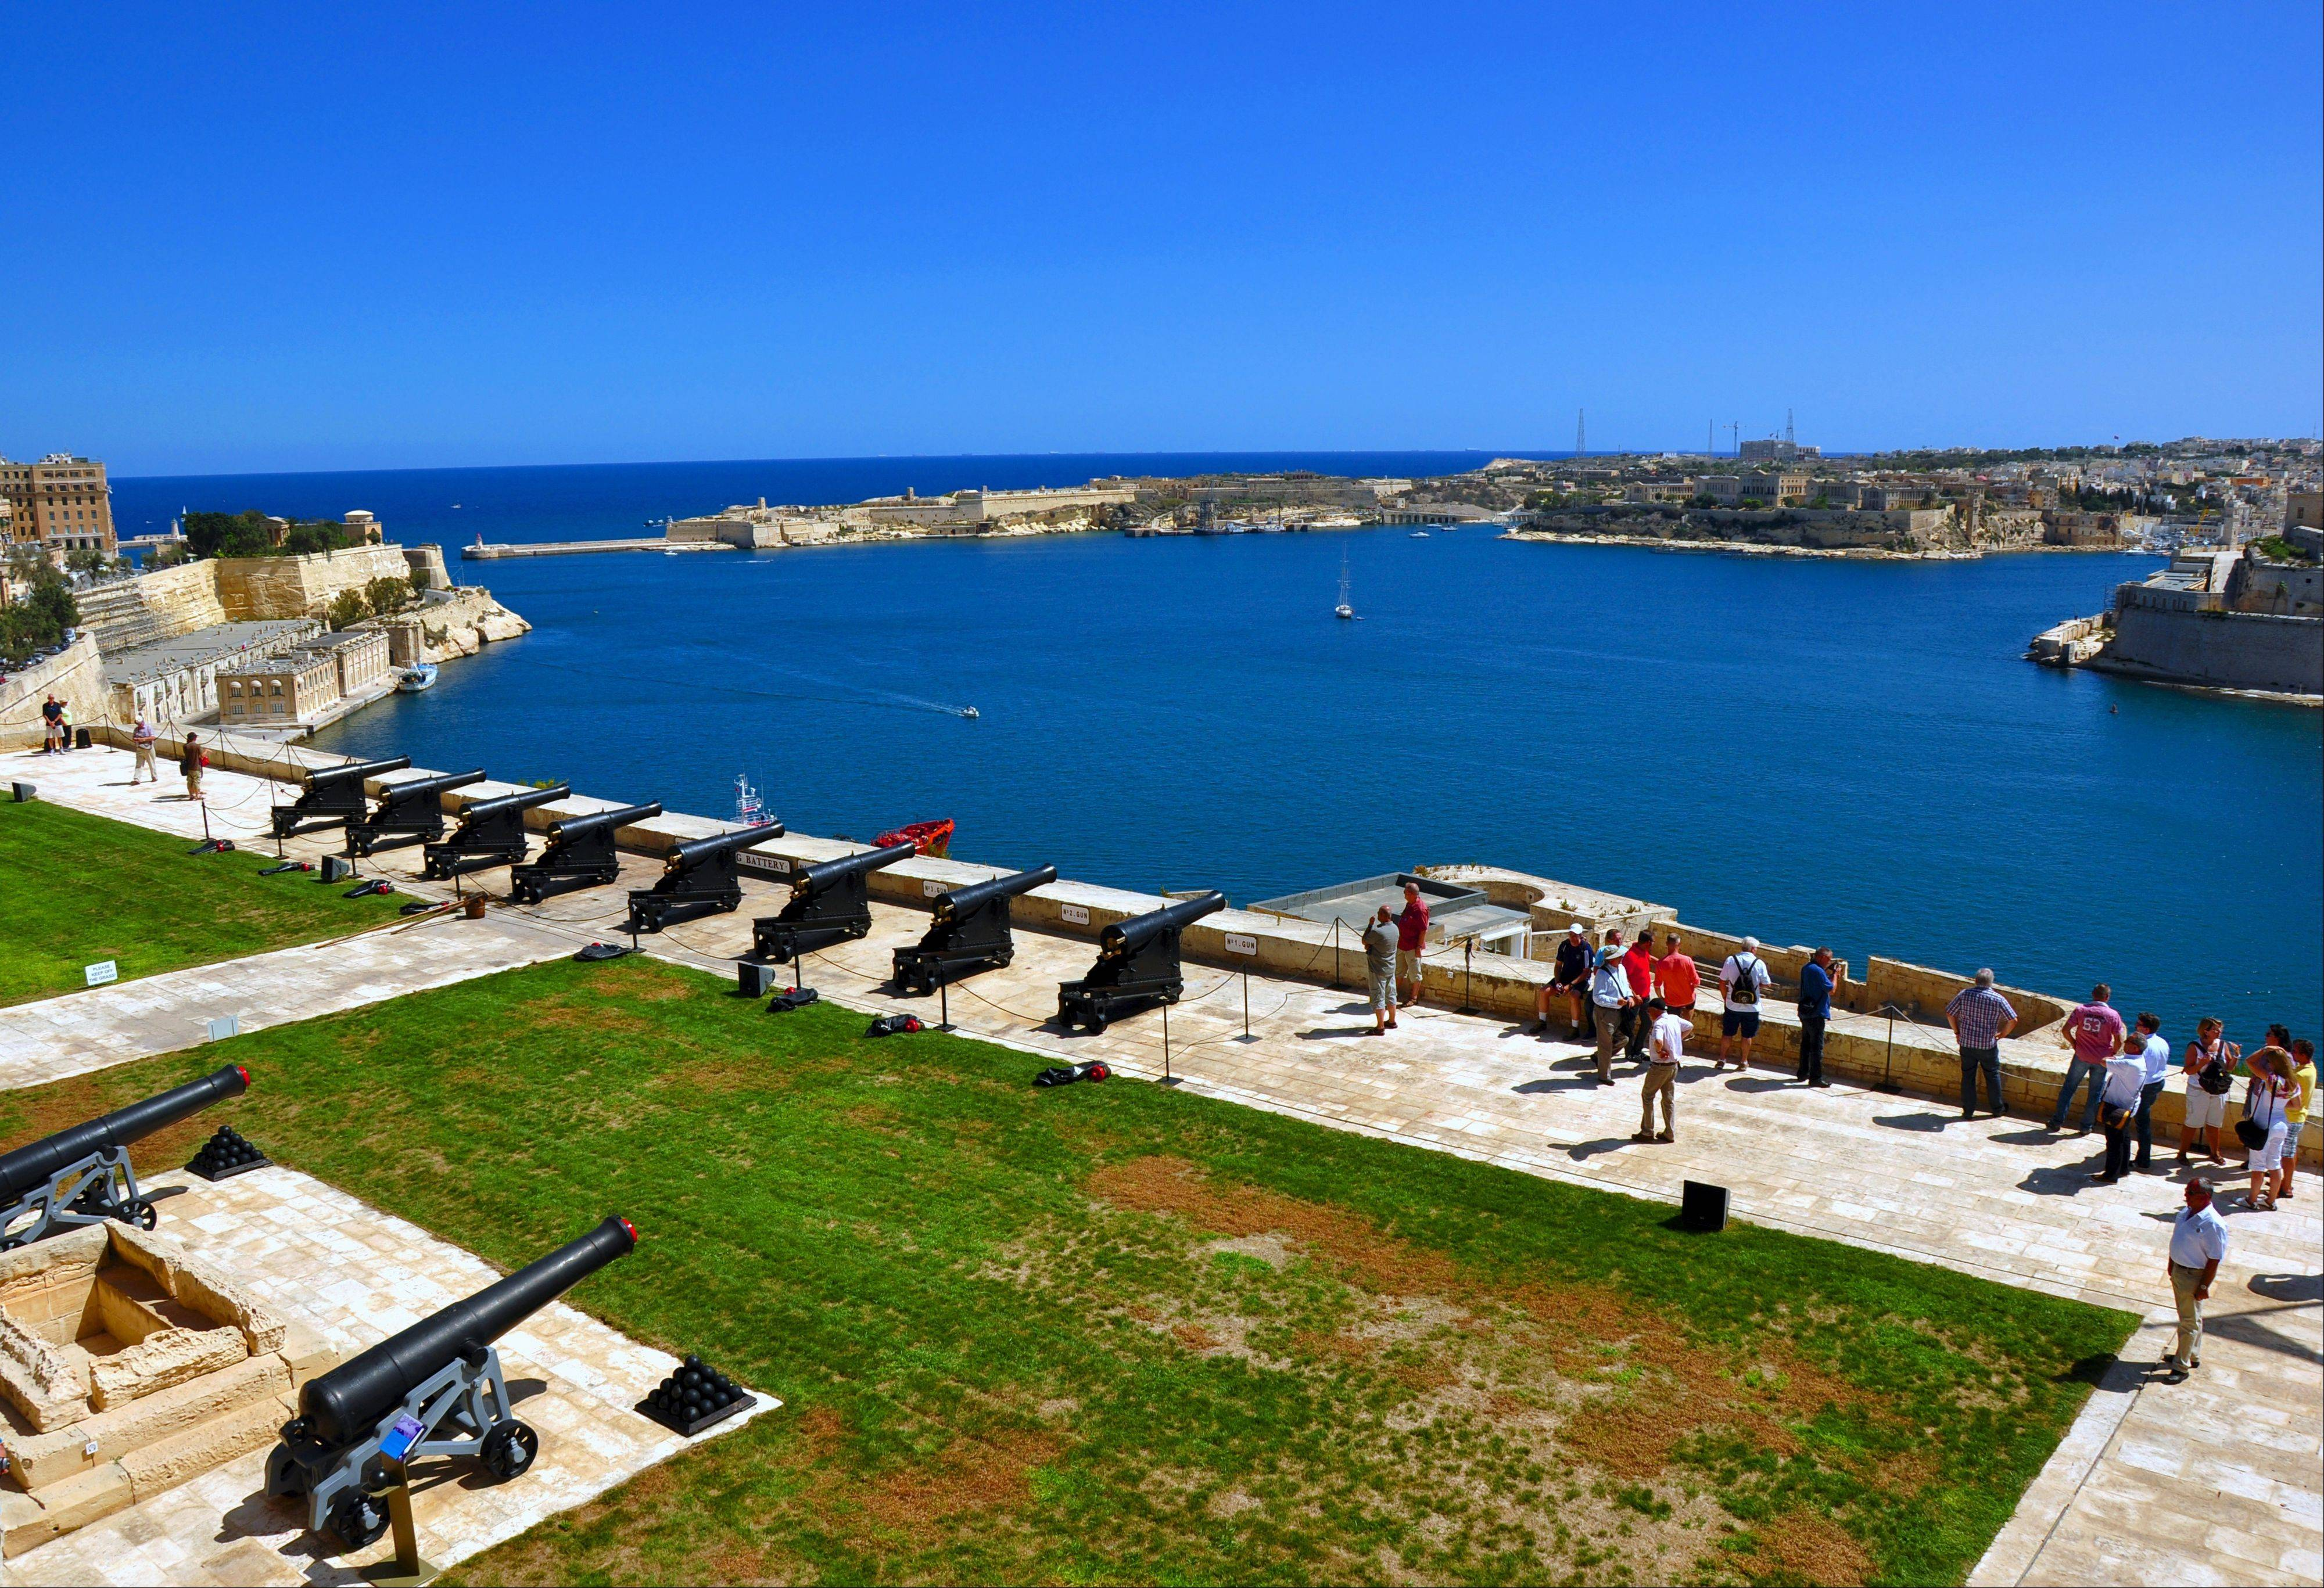 The Upper Barracca Gardens in Valletta overlook the Grand Harbor. Malta successfully fought off attackers in two sieges, one in 1565 and another during World War II.